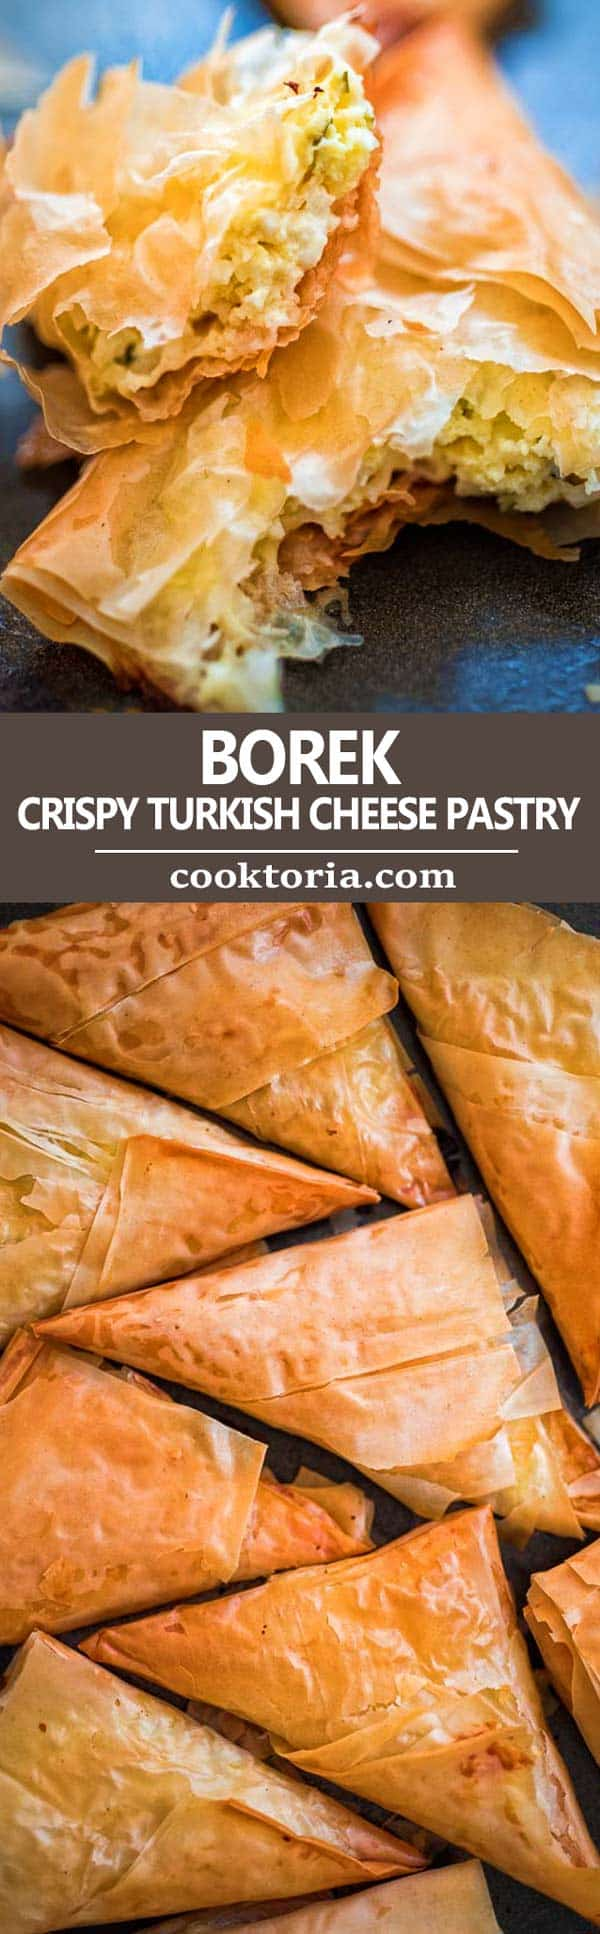 Crispy Phyllo Dough layers filled with creamy feta cheese make this Borek a delicious appetizer that is so easy to make! This recipe is a keeper! ❤ COOKTORIA.COM #borek #filo #phyllo #pastry